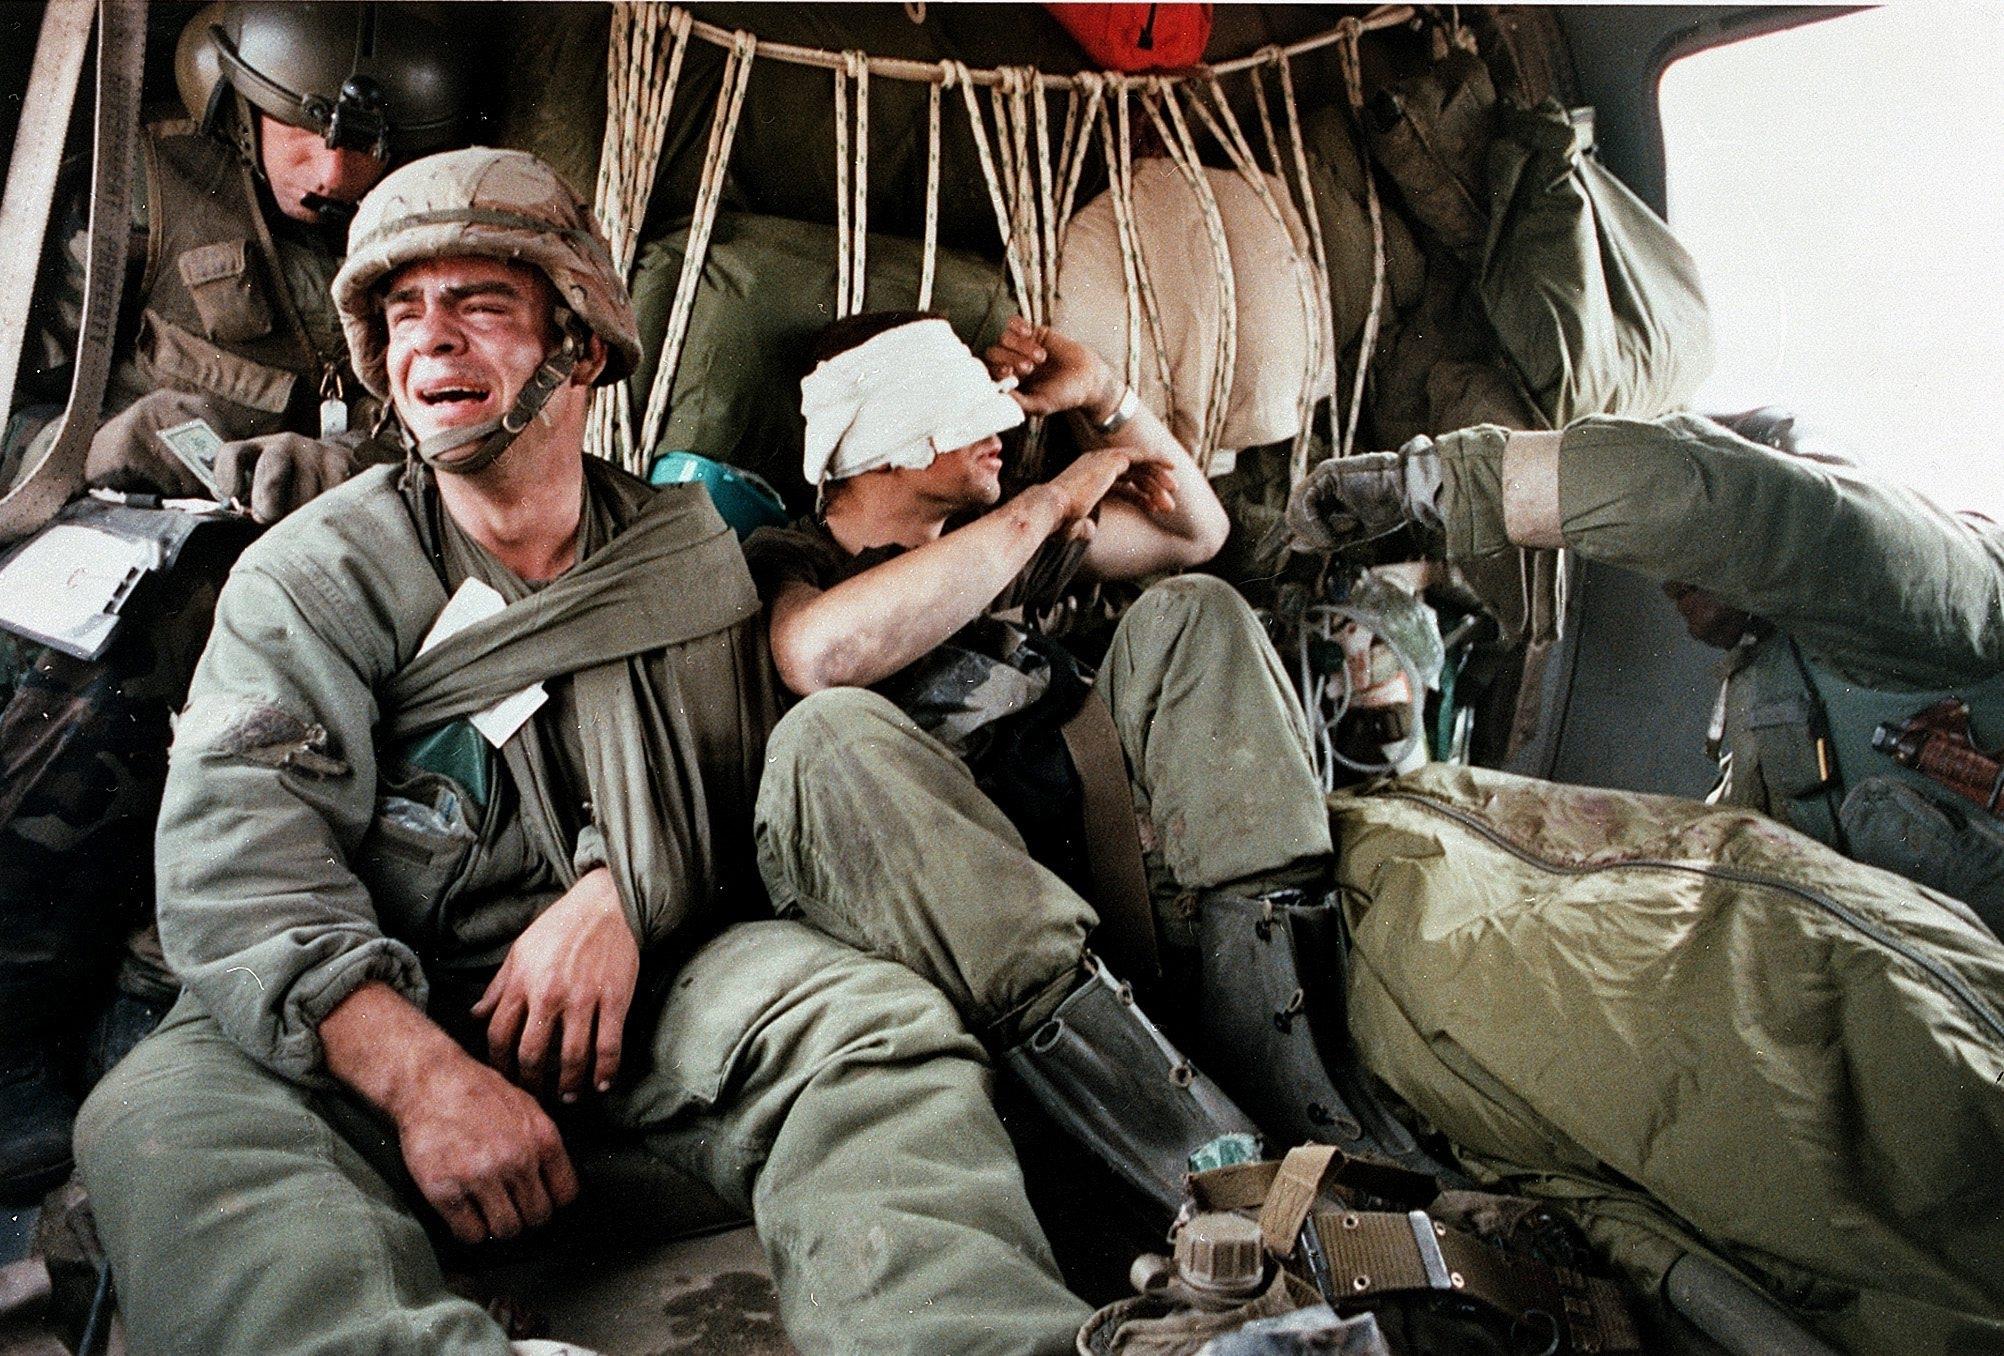 The face of war: Sgt. Ken Kozakiewicz, left, wails with grief after learning that the solider in the body bag is fellow crewman Pvt. Andy Alaniz, in this 1991 photo taken by David C. Turnley. The widely published photo came to define the Persian Gulf War for many.